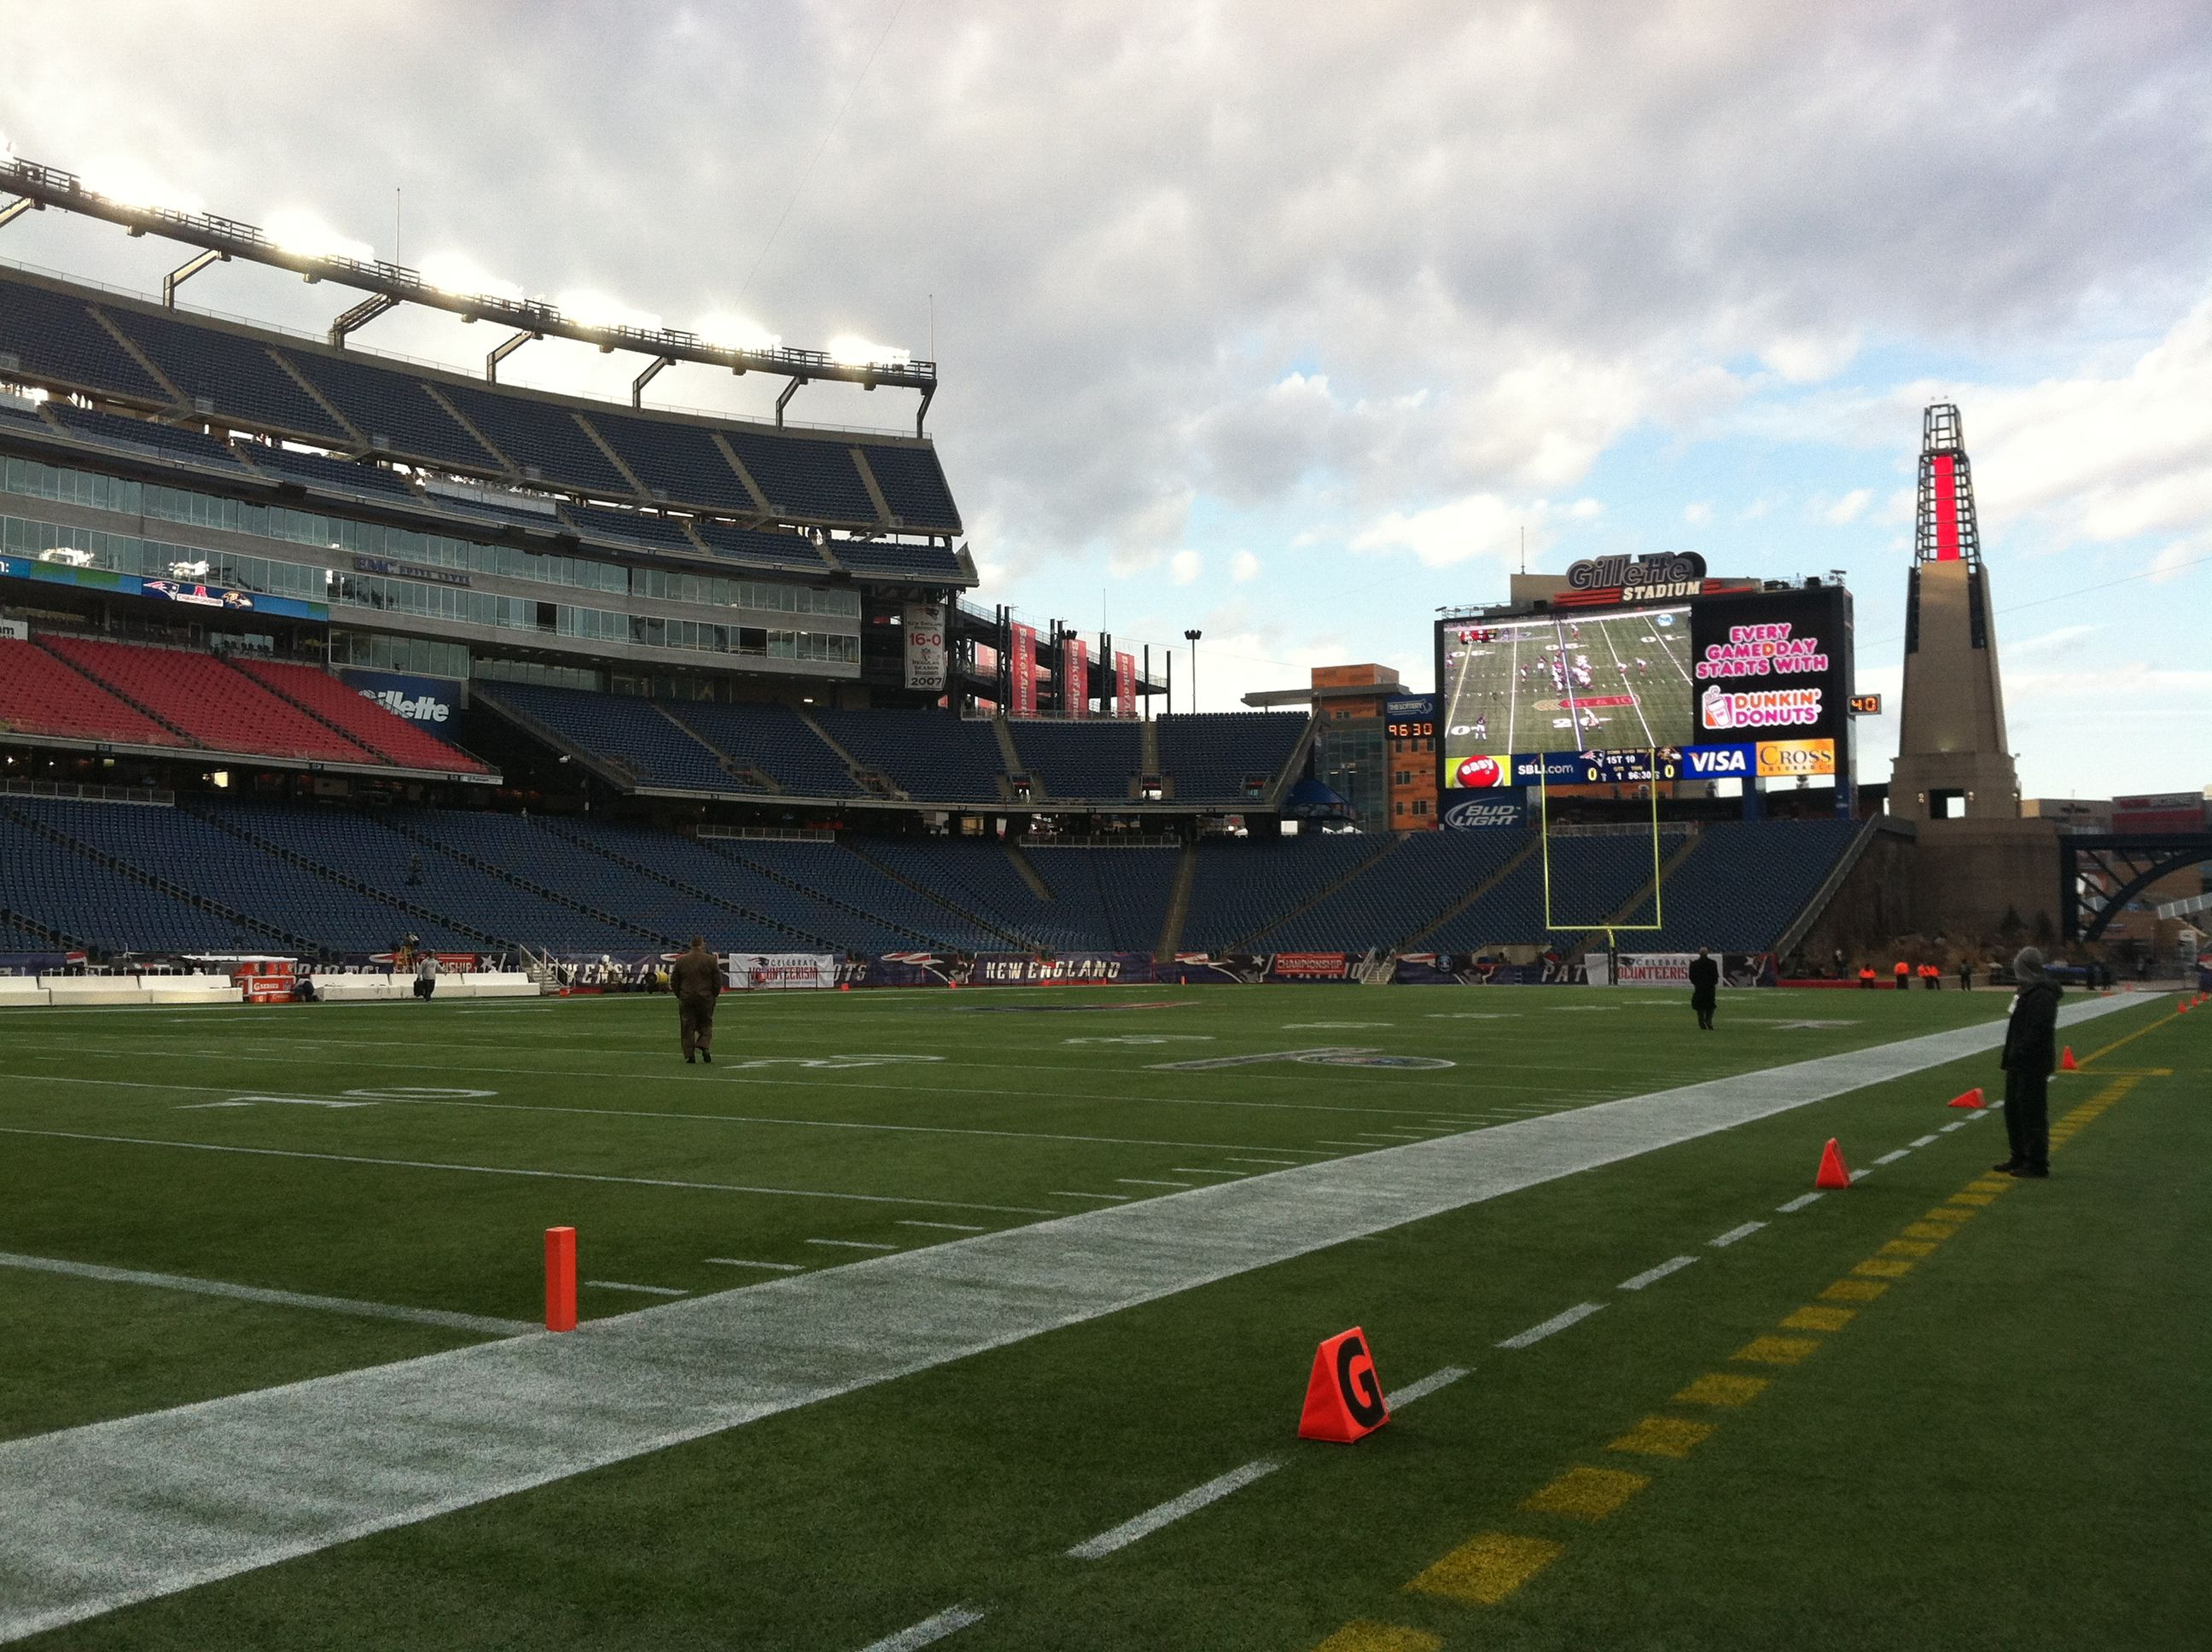 The Ravens Have Invaded Gillette Stadium The Calm Before The Storm Ravens Home New England Patriots Gillette Stadium